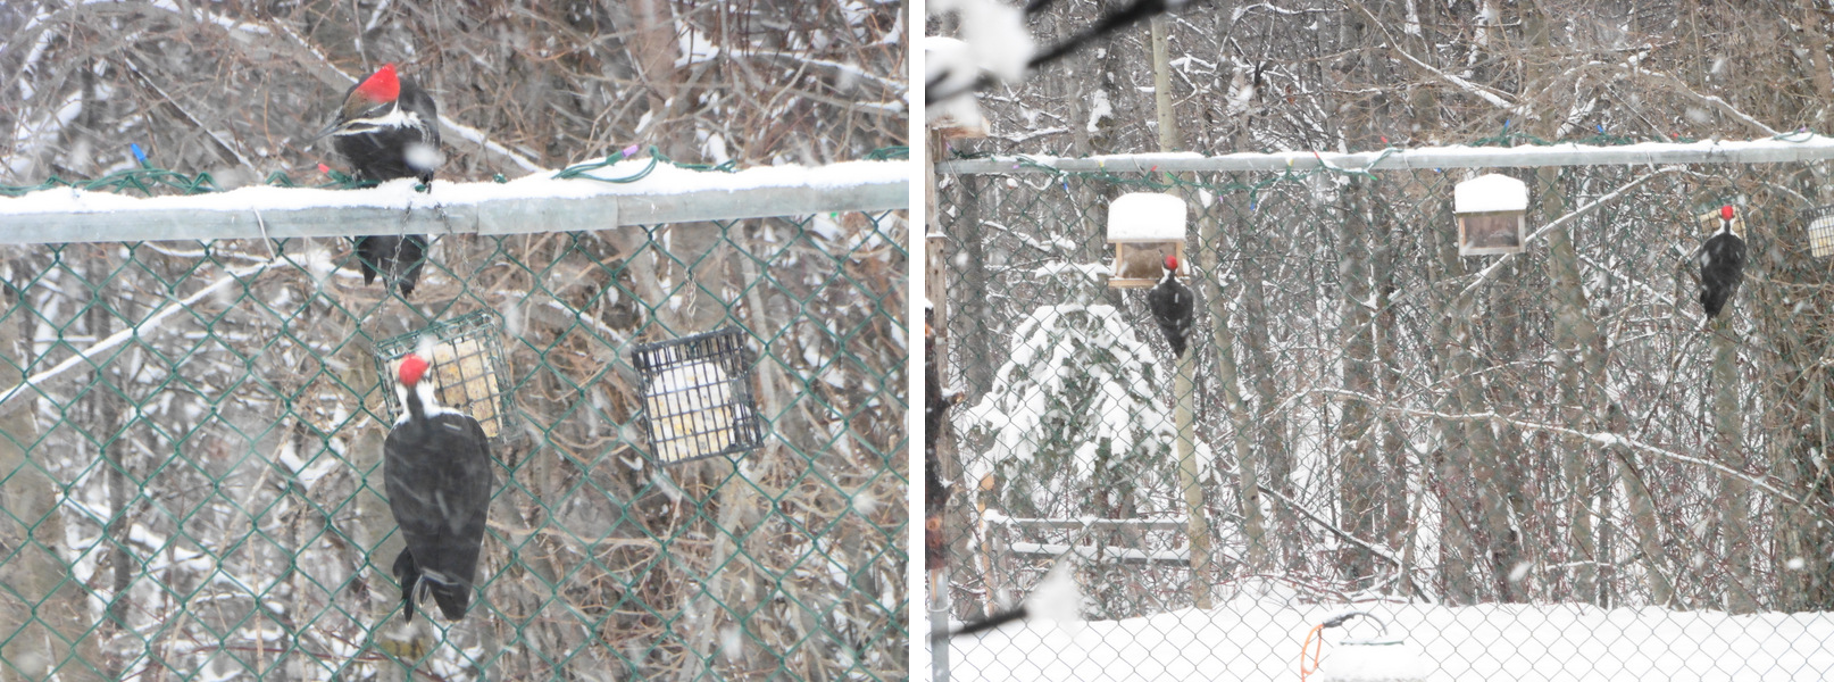 Most often the pair will park themselves in the trees and then one or the other will come into the yard to partake at one or more of the feeders. Then they will switch around. But it is a rare occurrence for them both to come at the same time, so it was a real treat to see them together.